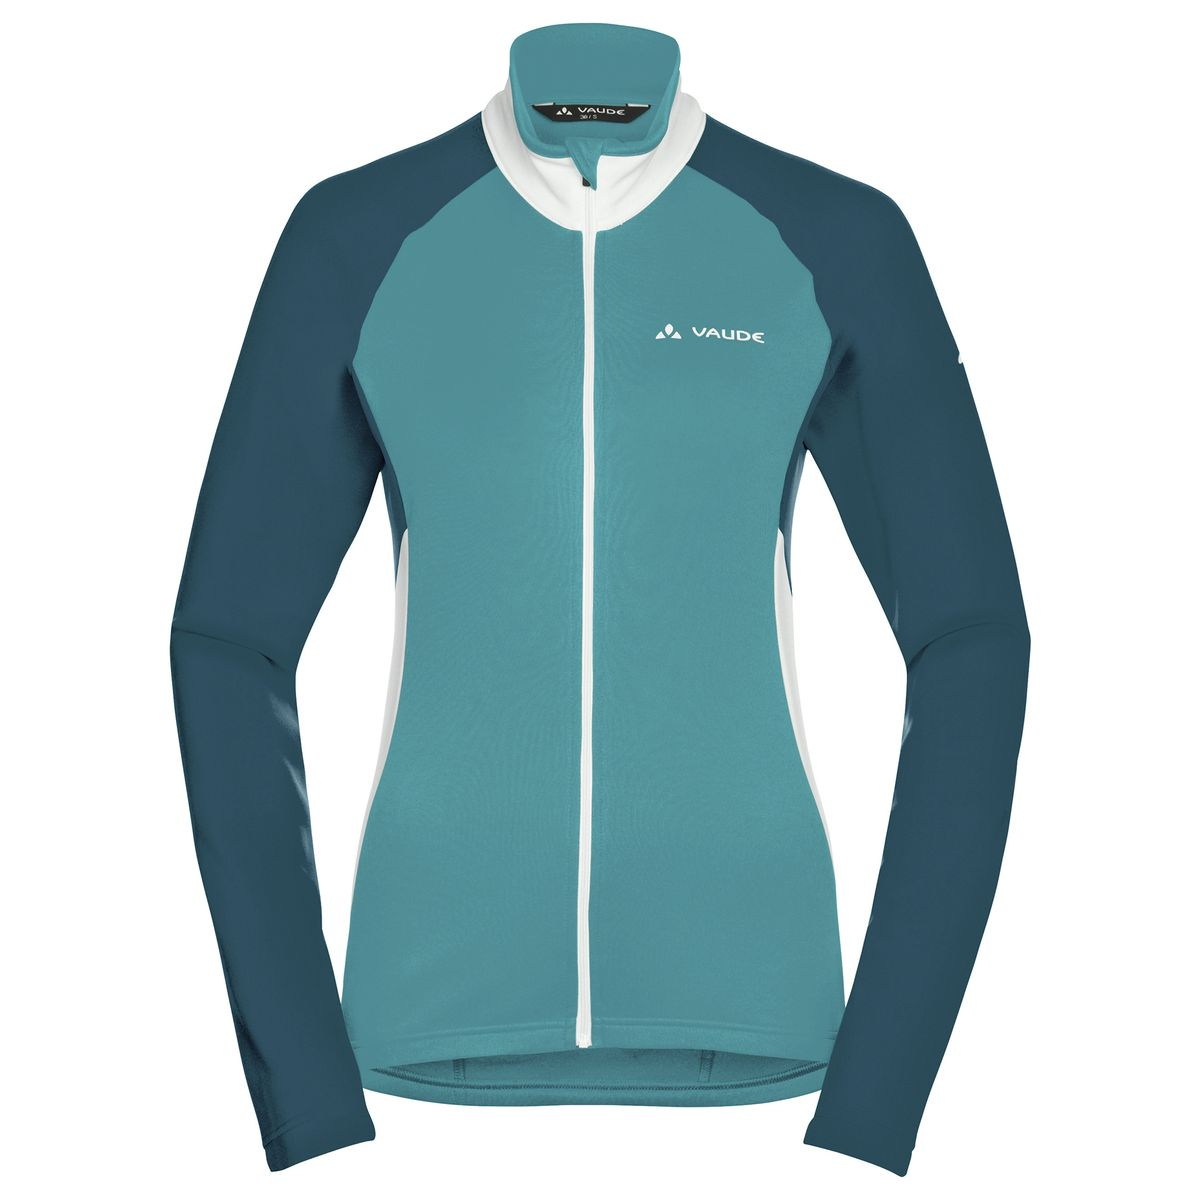 VAUDE MATERA II women's long-sleeved jersey | Trøjer